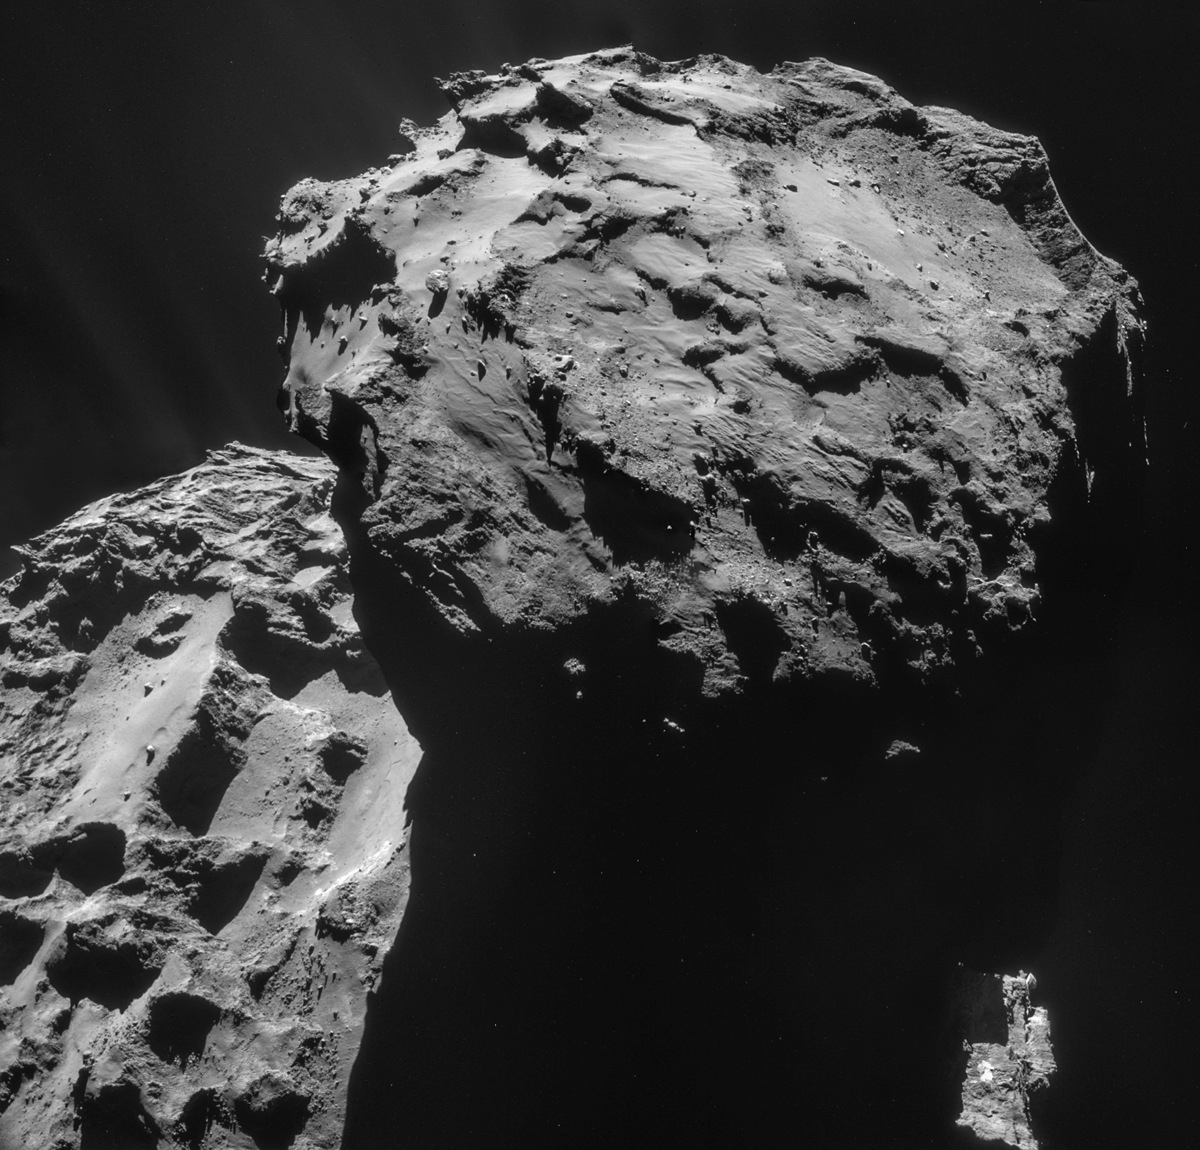 Most of Earth's Water Came from Asteroids, Not Comets